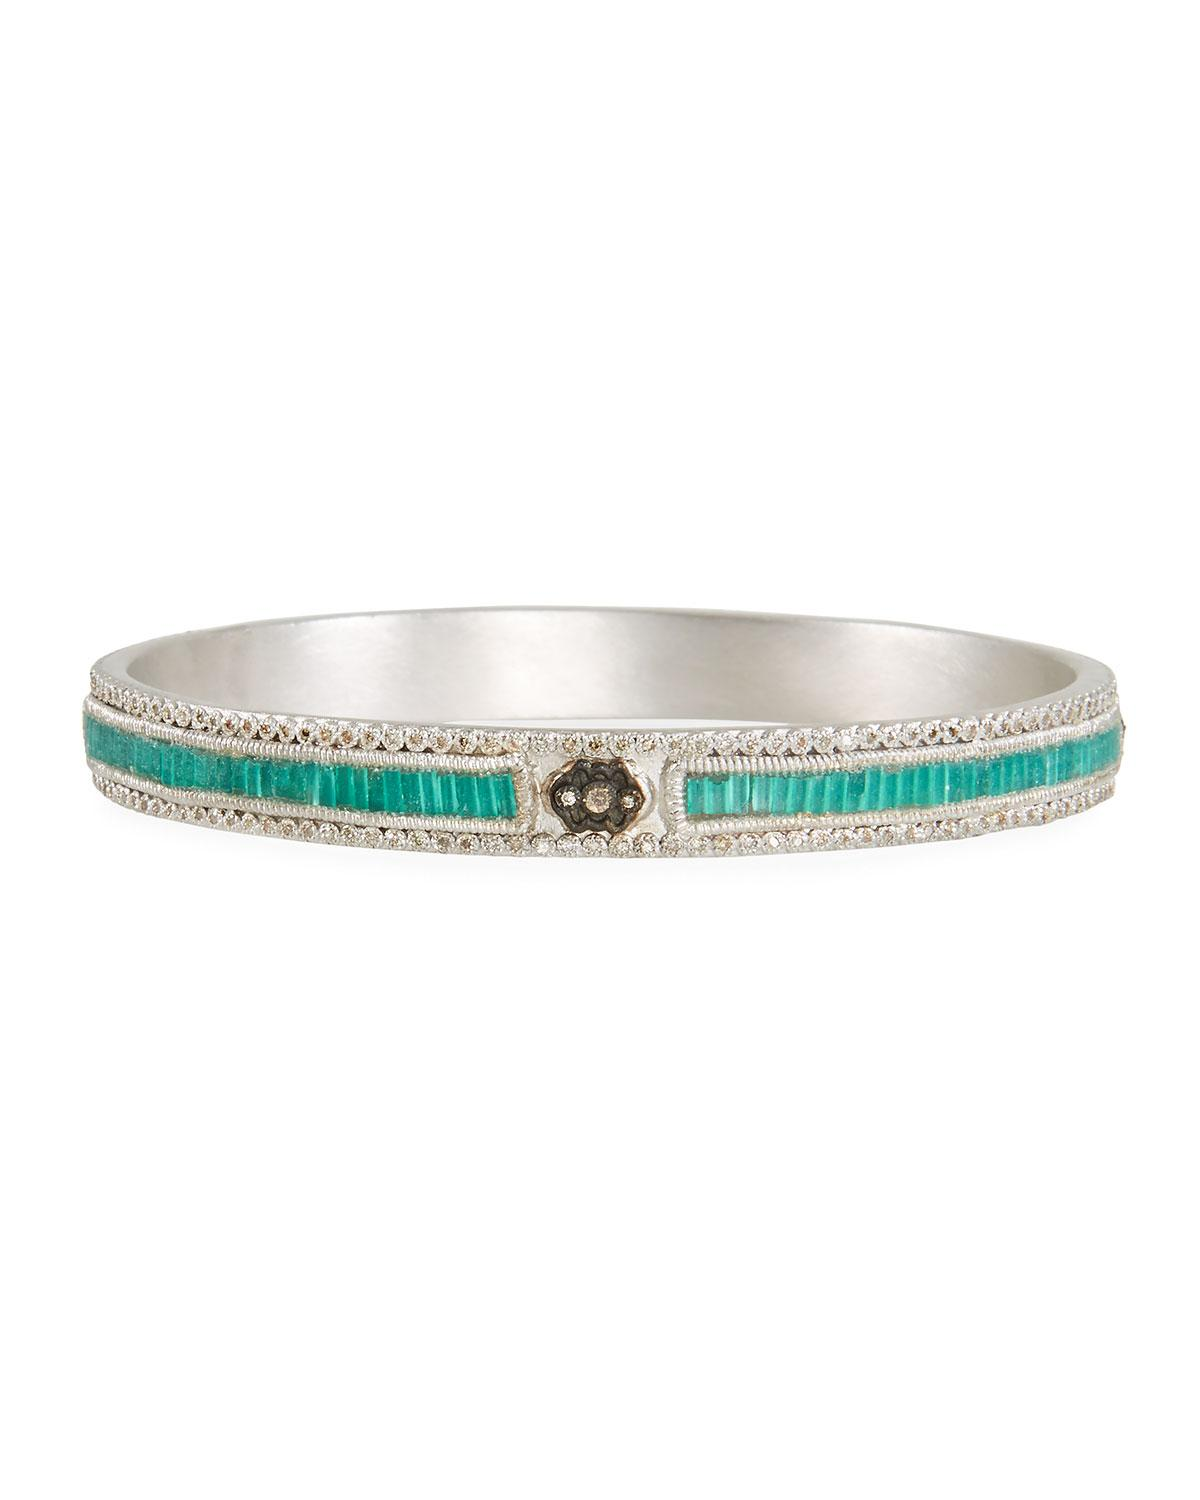 Armenta New World Teal Mosaic Bracelet with Diamonds MIBhf2aFWA